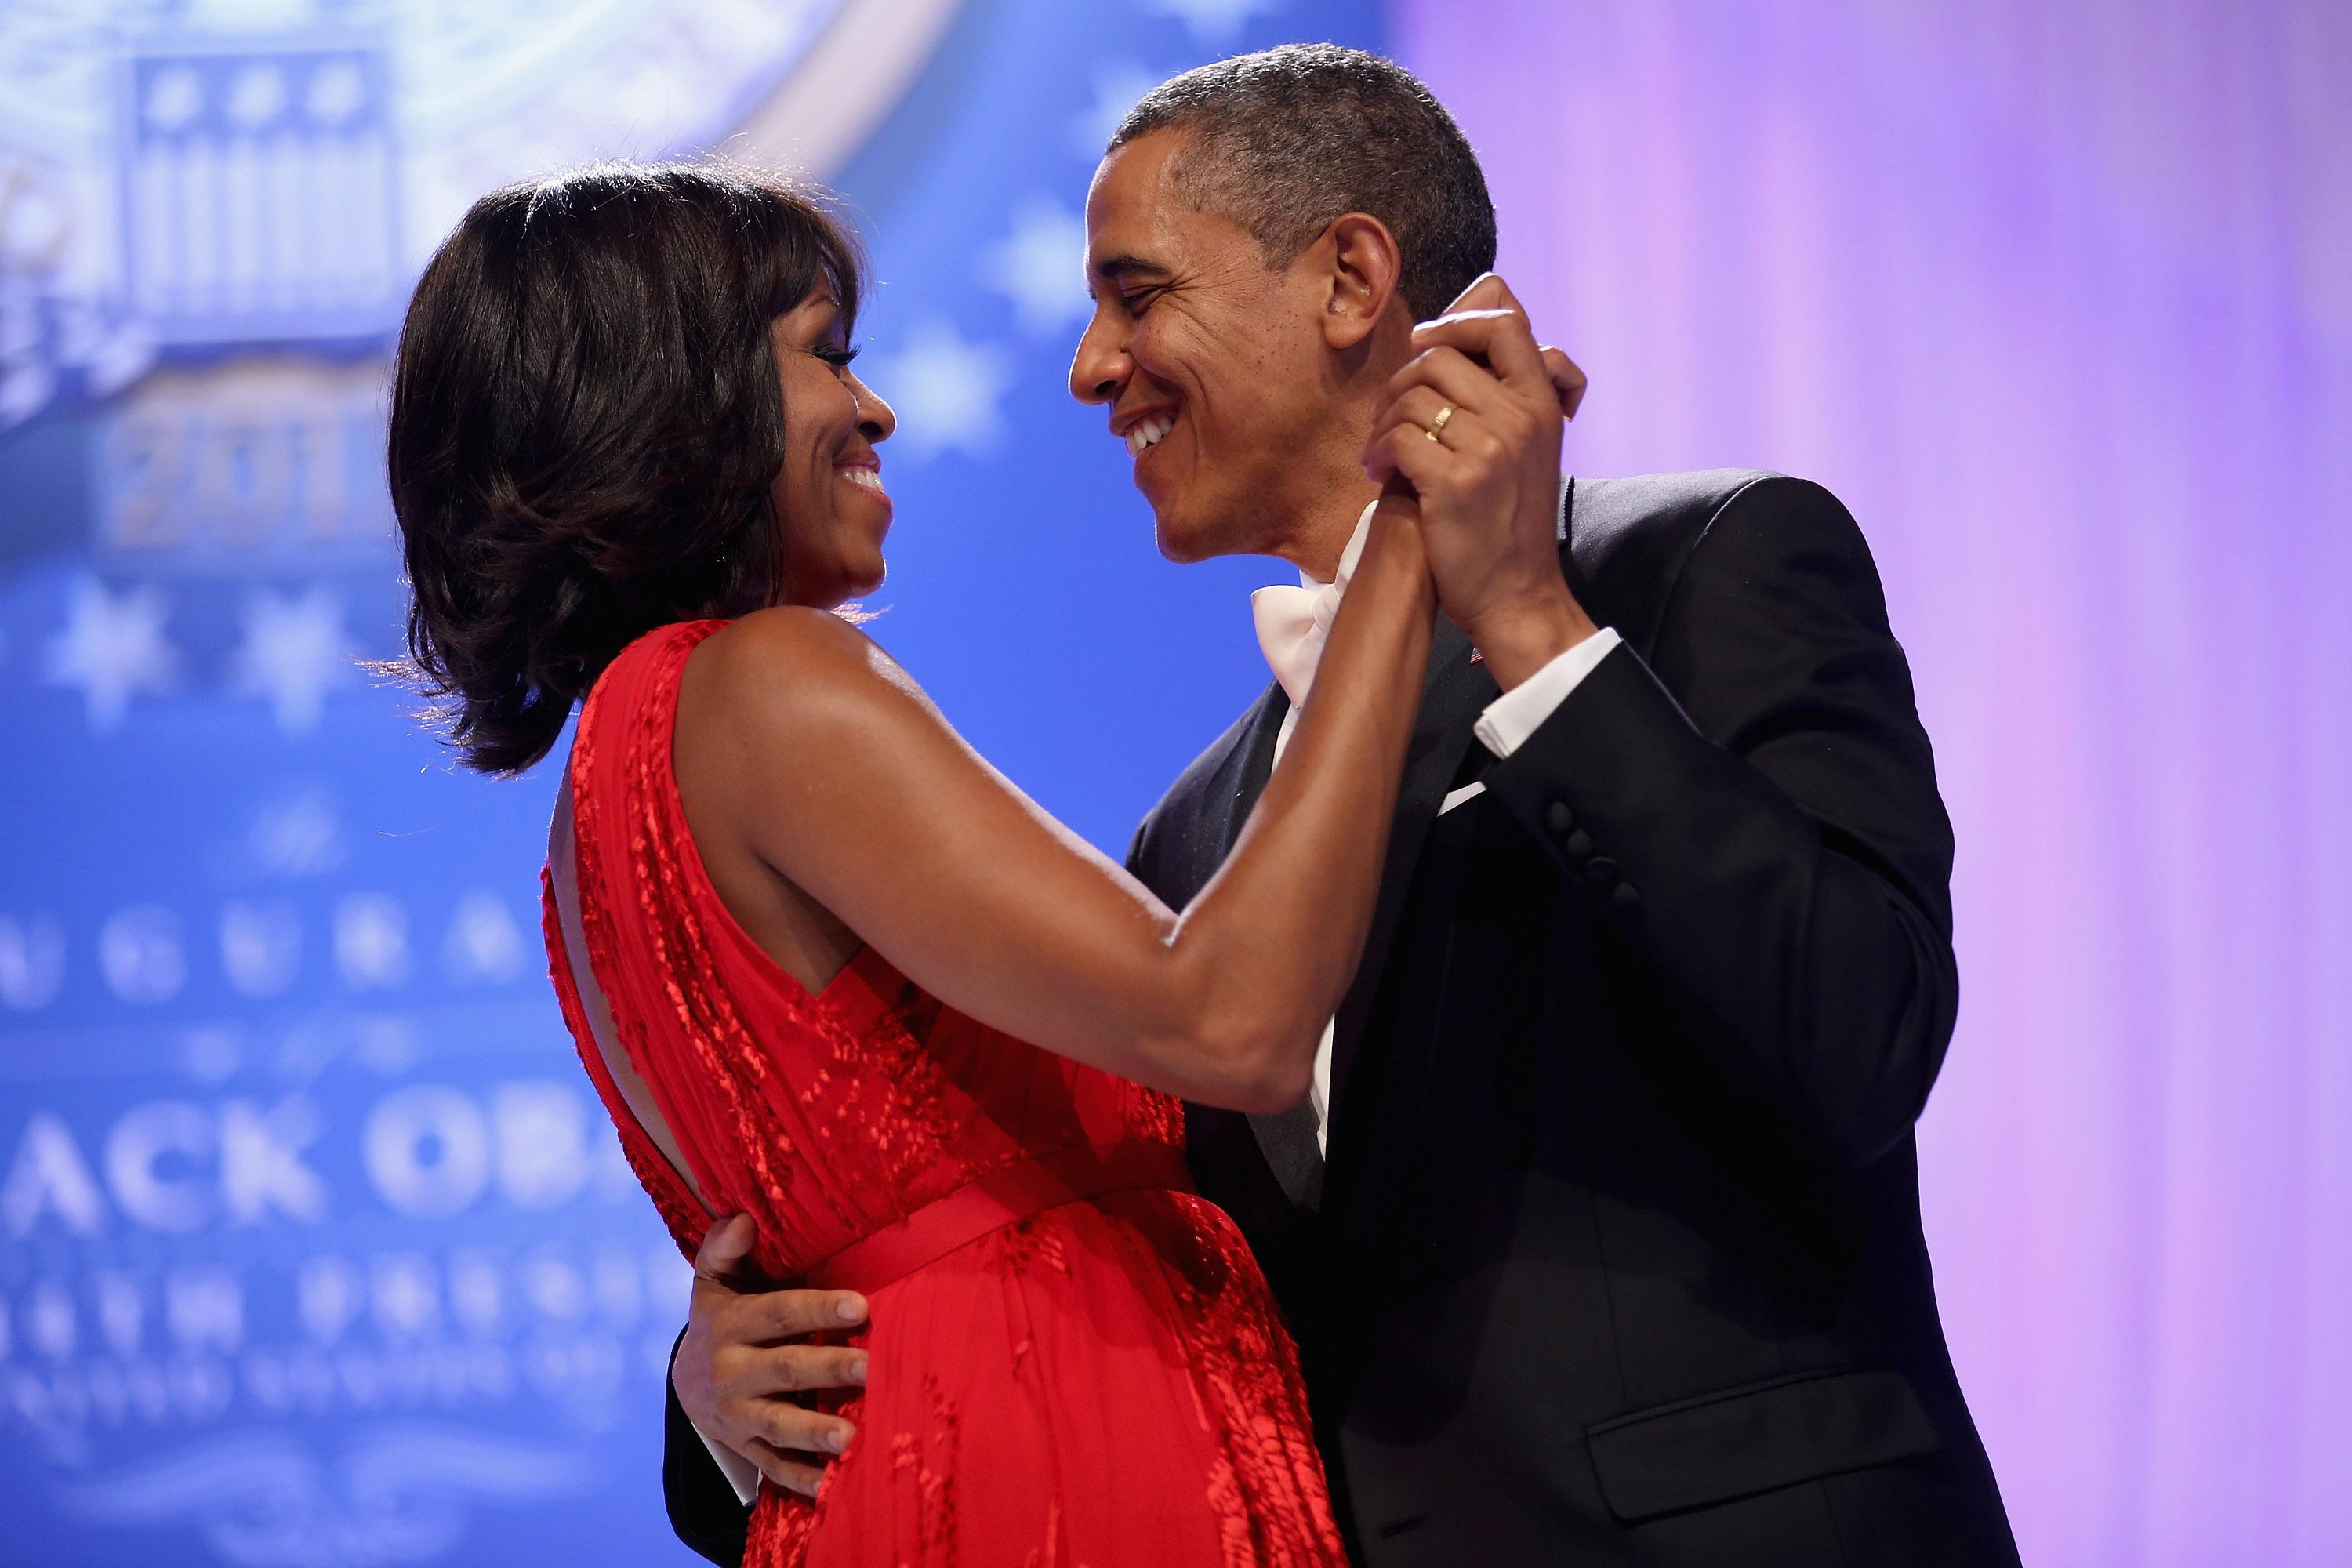 Then-president Barack Obama dances with Michelle Obama during the Western Inaugural Ball in 2013 in Washington, DC. [Photo: Getty]